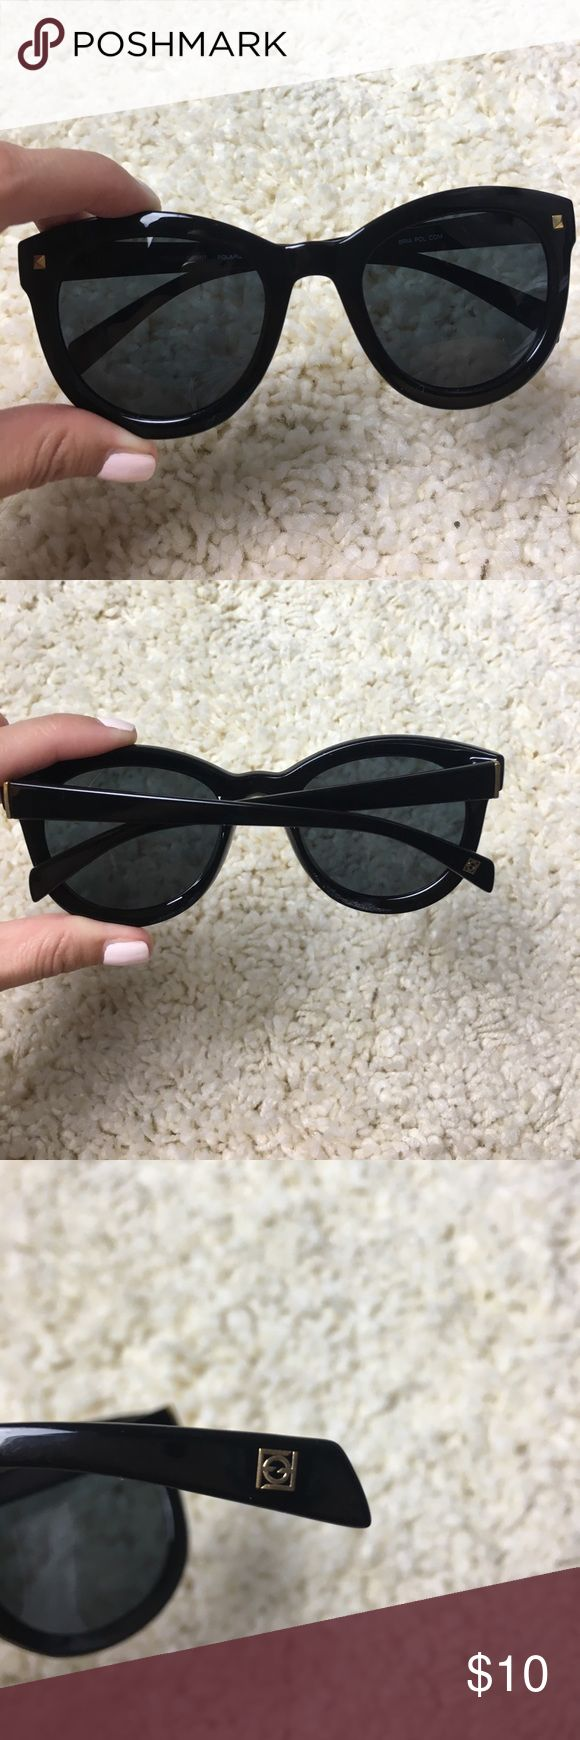 Black foster grant sunglasses Perfect condition. Worn for about 5 min for a photo shoot. Black. Foster Grant Accessories Sunglasses